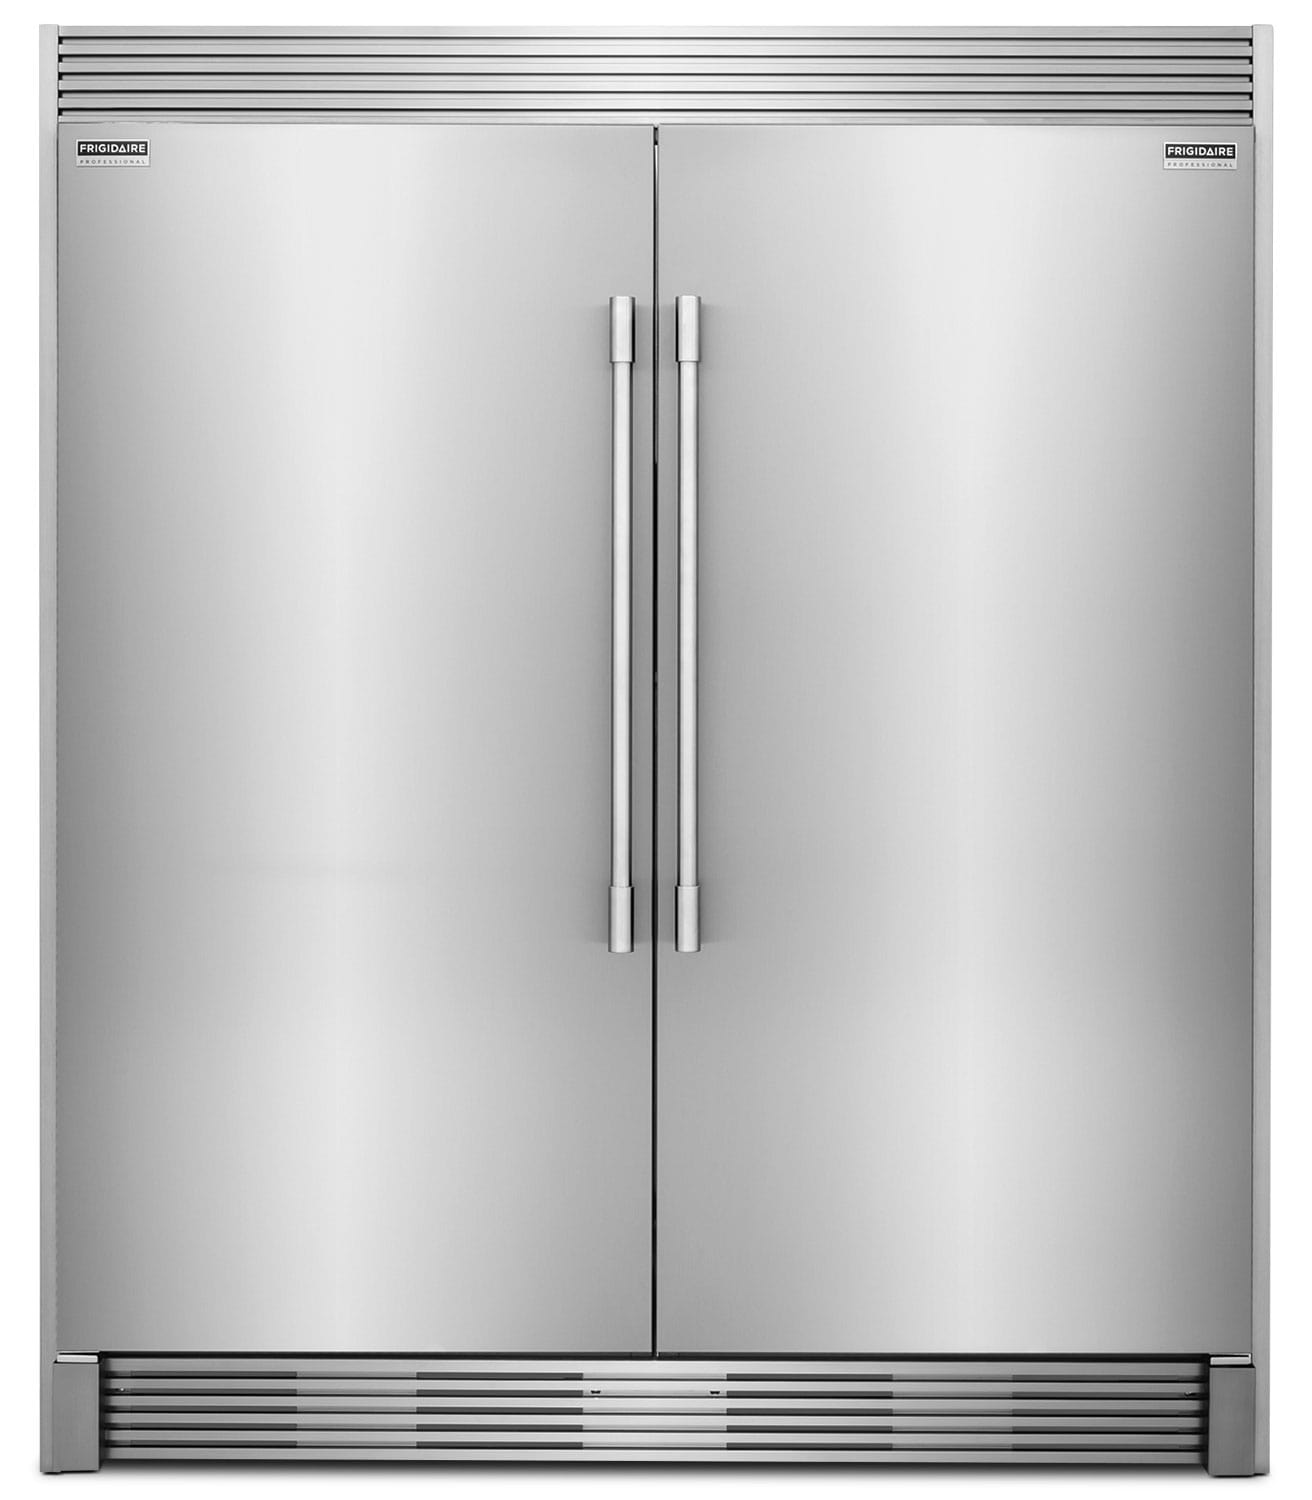 Frigidaire Professional 19 Cu. Ft. Refrigerator, 19 Cu. Ft. Freezer and Trim Kit Package